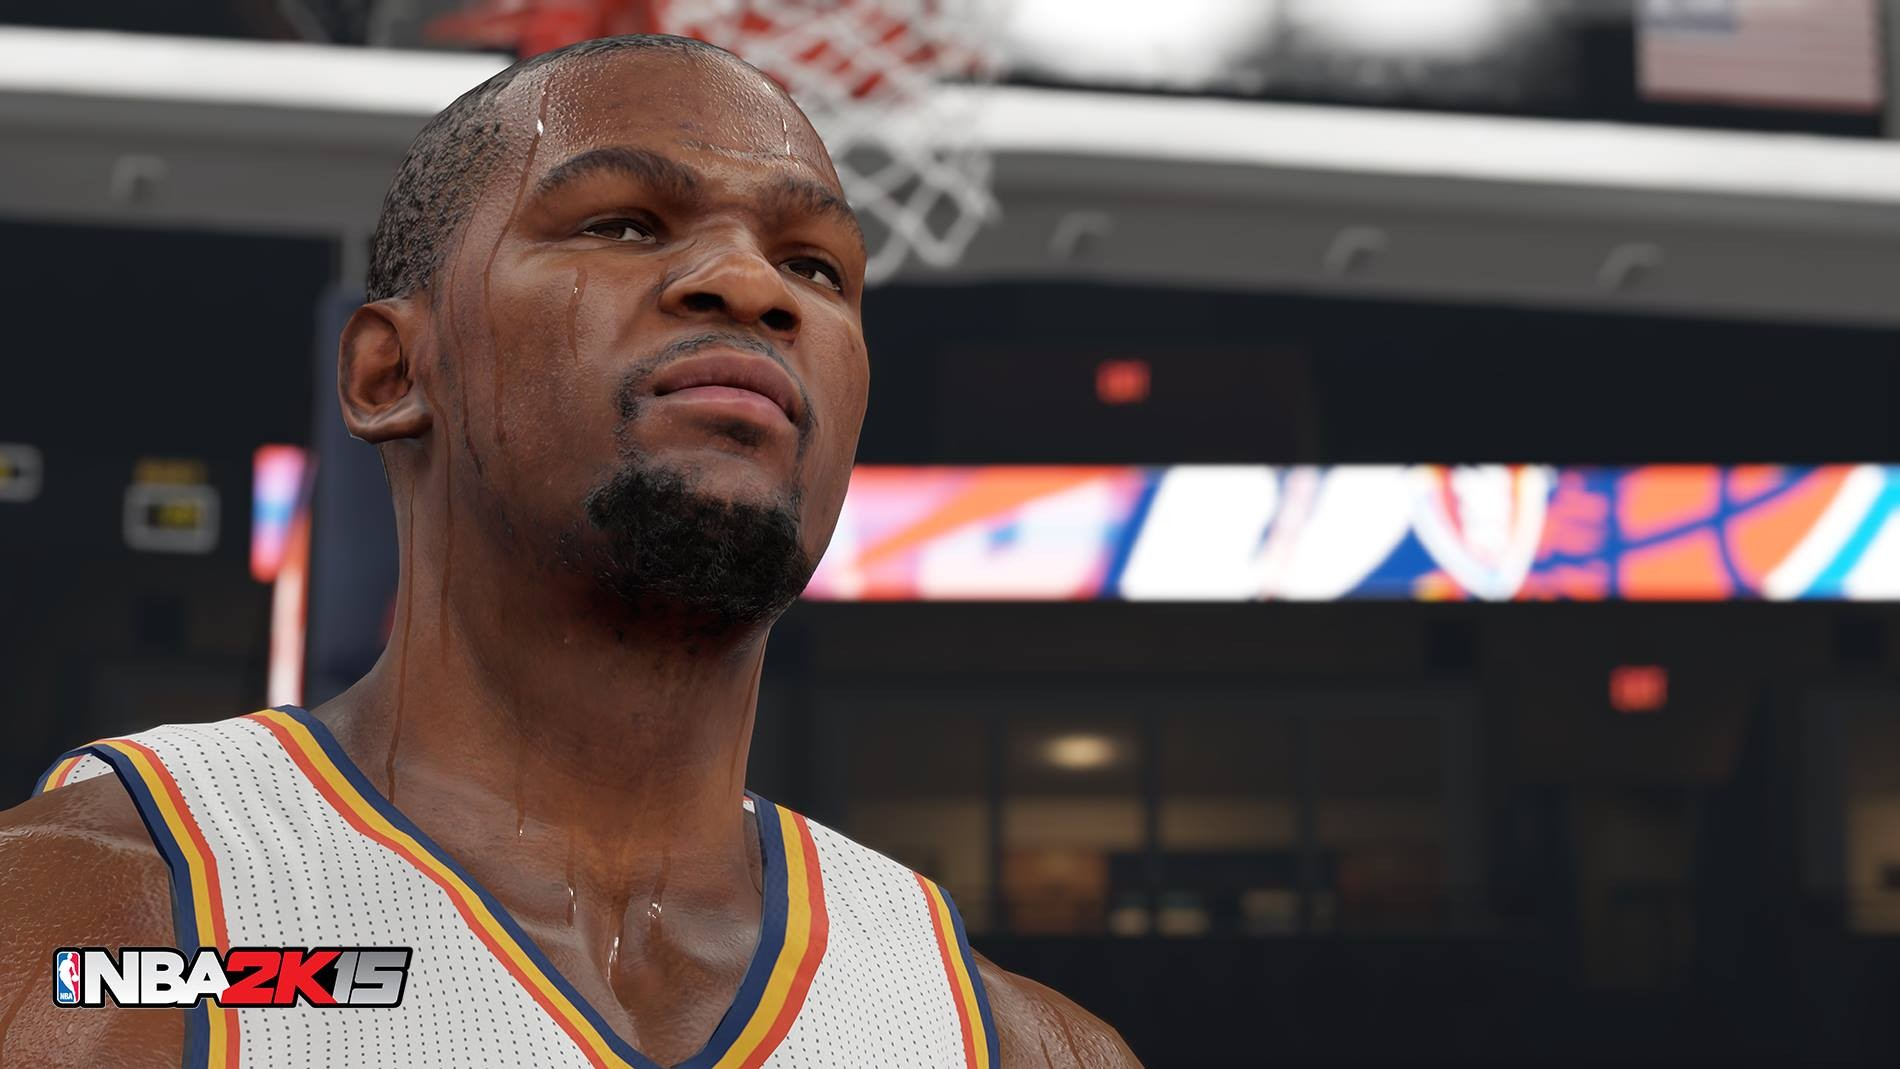 NBA 2K15 presenta nuevo trailer con gameplay de MyTEAM